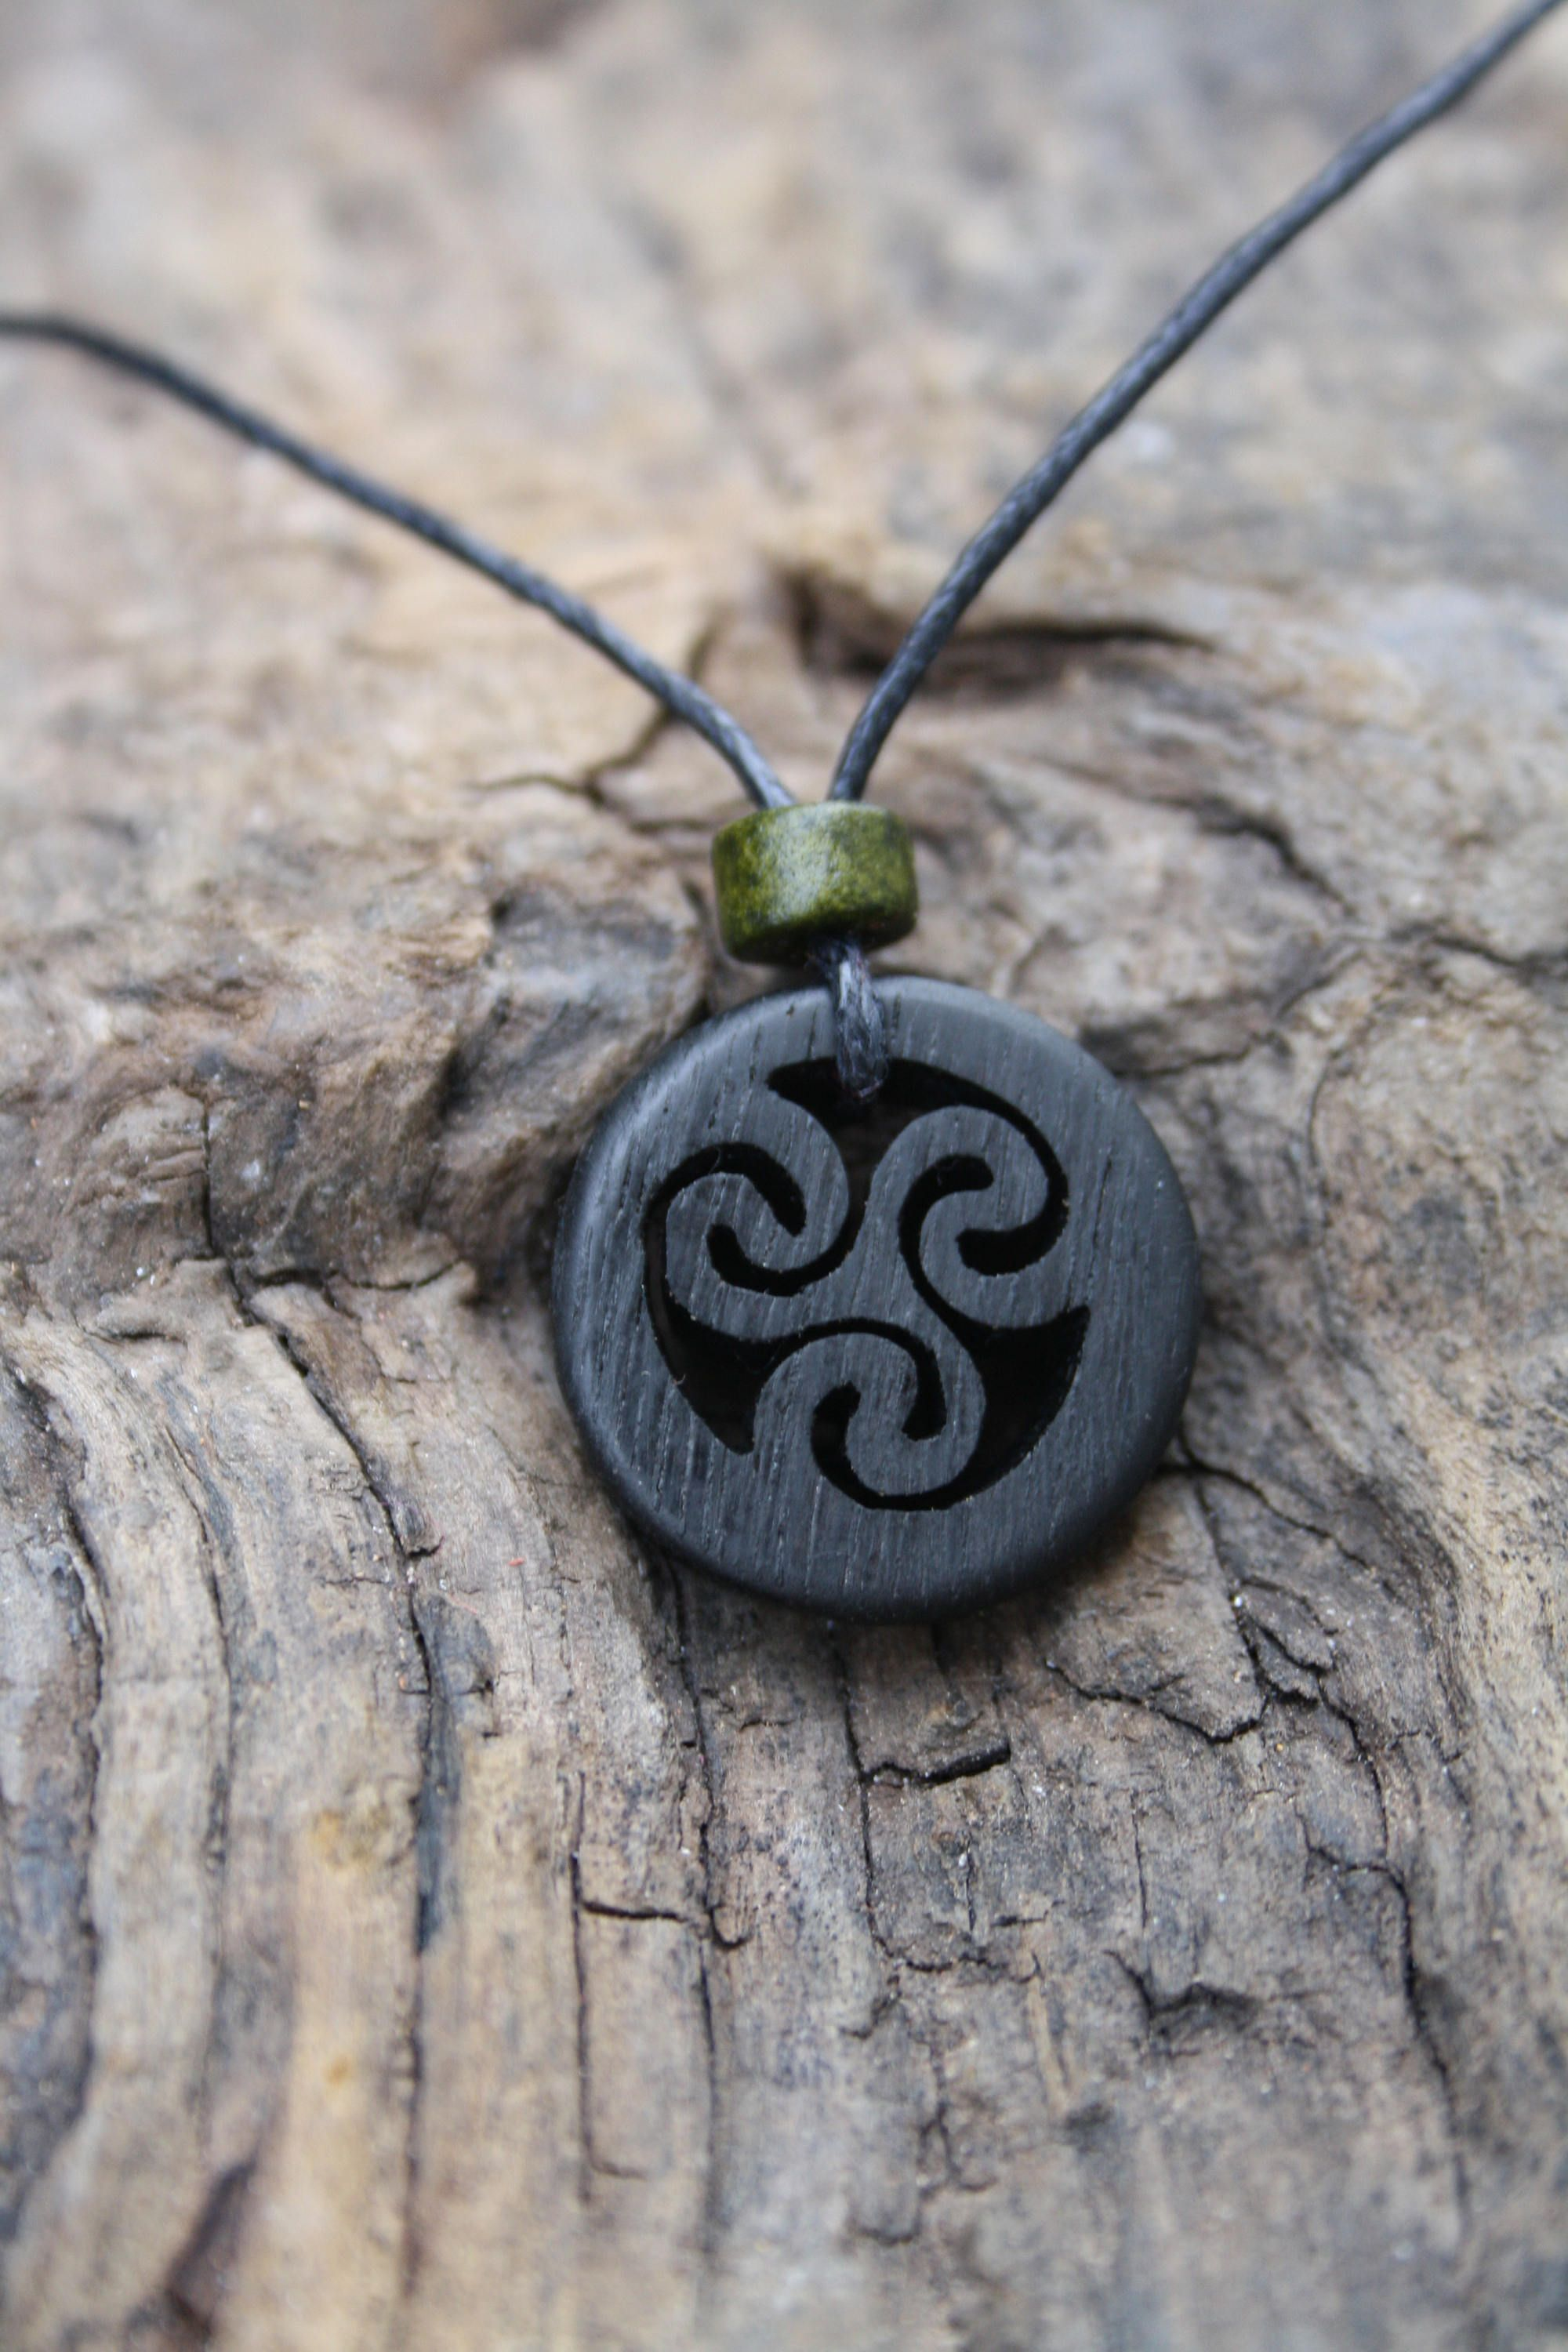 officially celts necklace vikings and hand crafted creatures pendant spirit img totems jewelry celtic sacred animals crafty licensed mythical